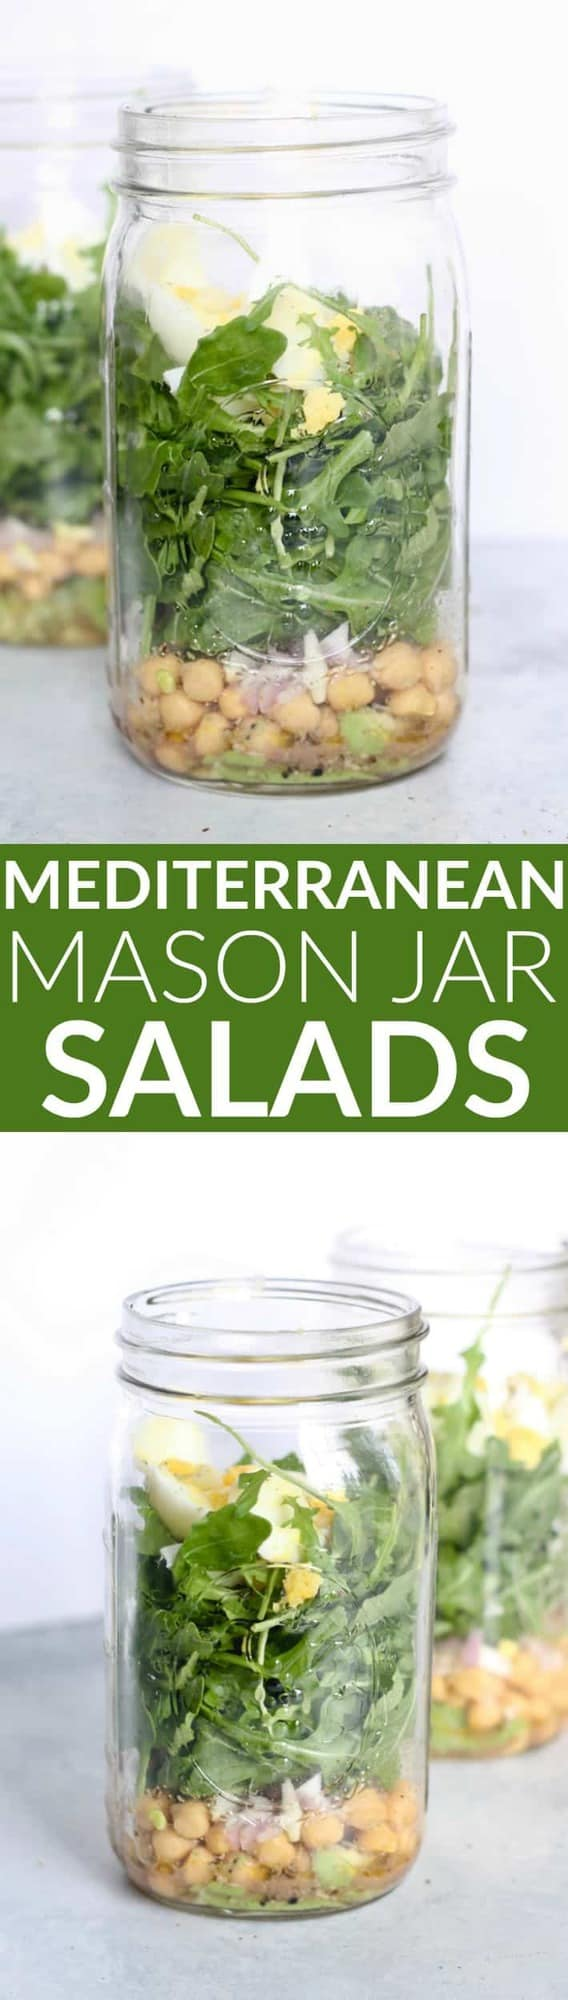 This refreshing, nutritious Mediterranean Salad in a Jar is the perfect protein-packed EASY lunch on the go!